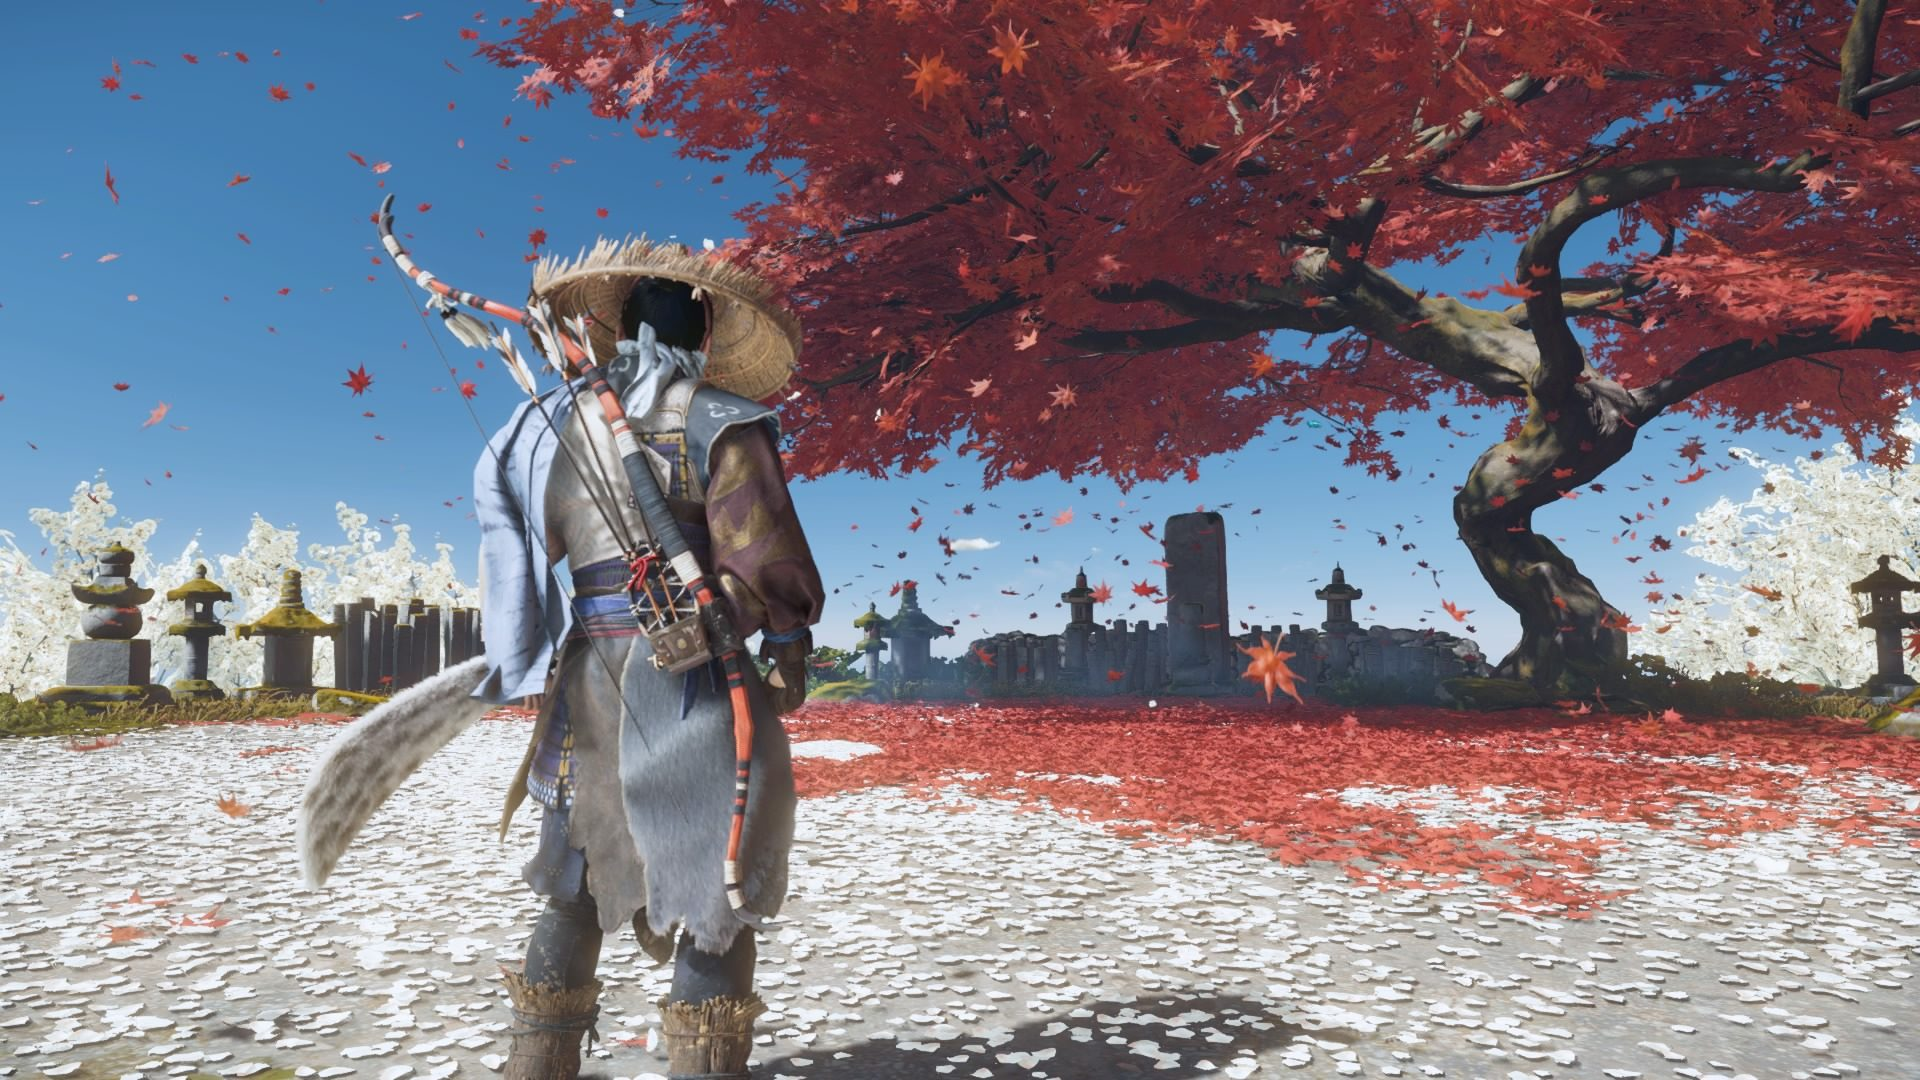 Of review ghost tsushima